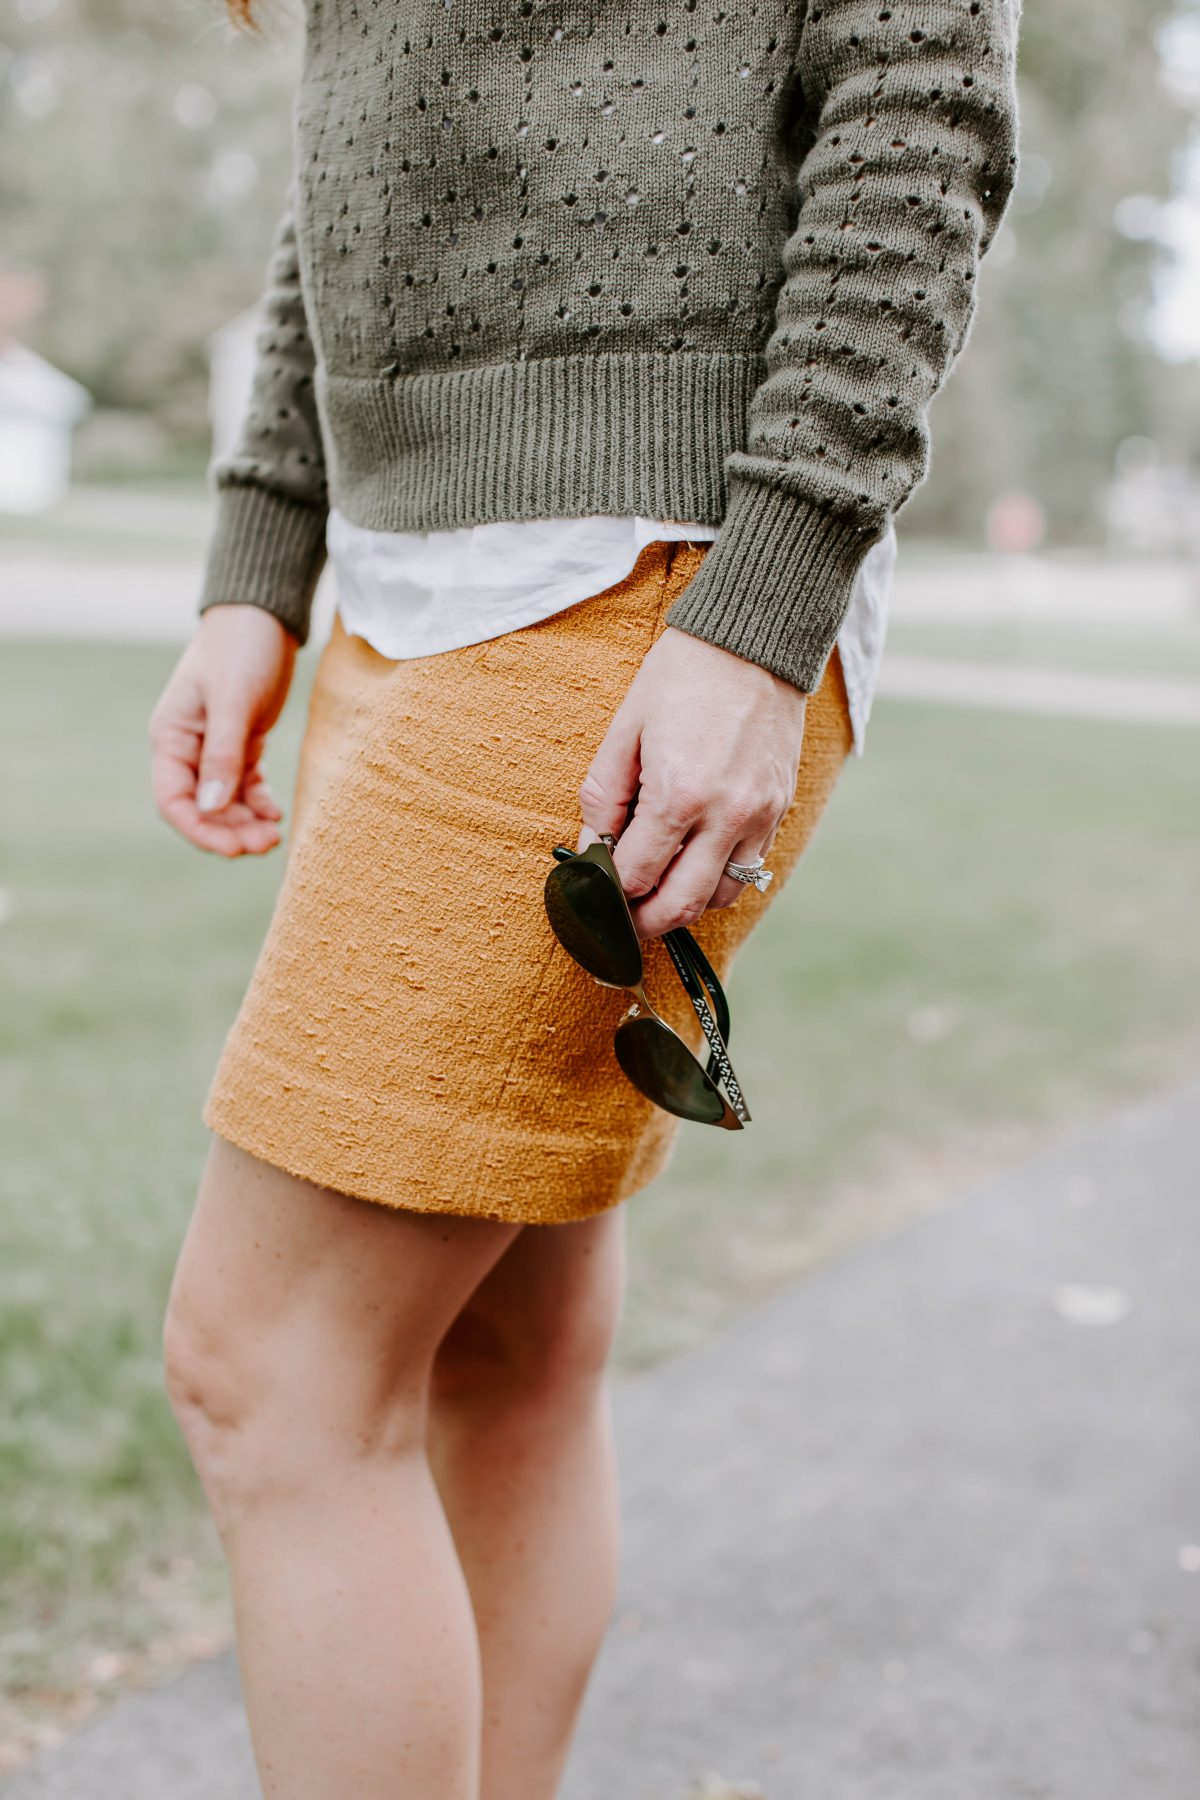 Detail shot of woman holding sunglasses while wearing green sweater and mustard skirt